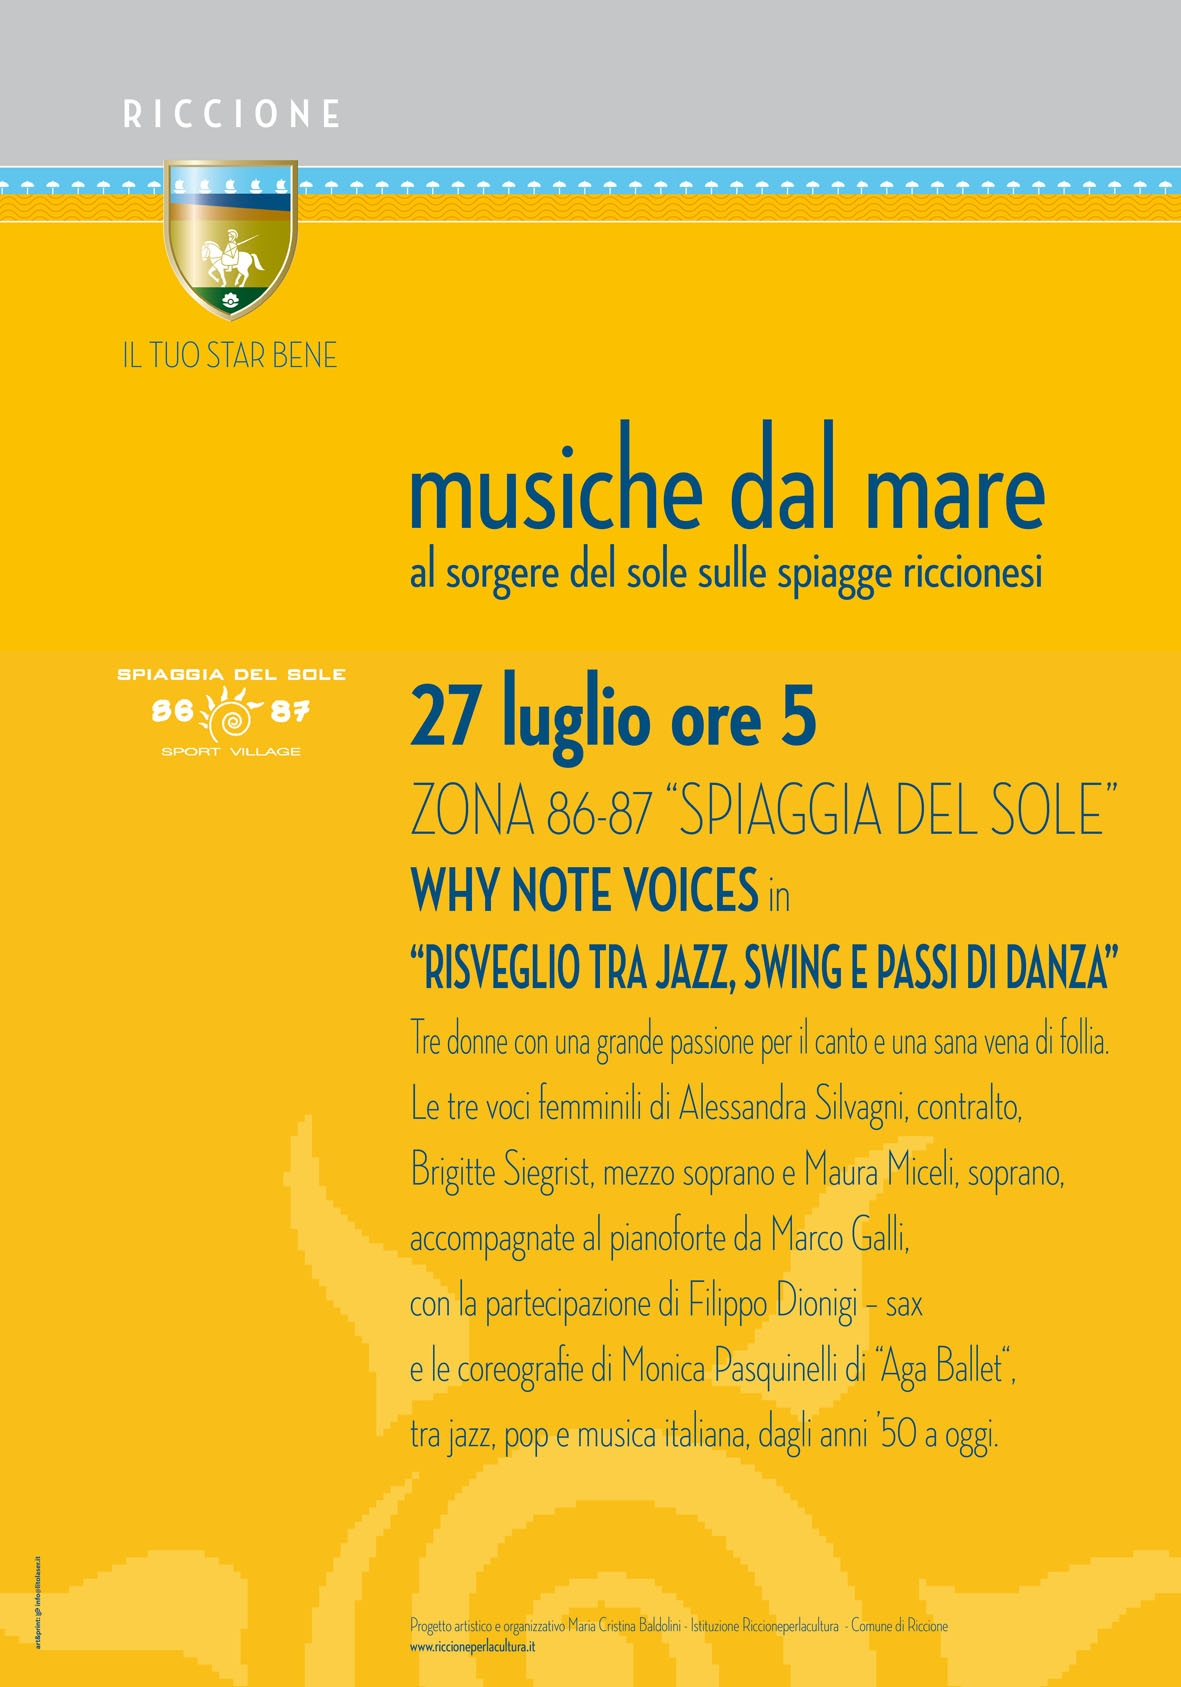 MUSICHE DAL MARE: concerti al sorgere del sole WHY NOTE VOICES